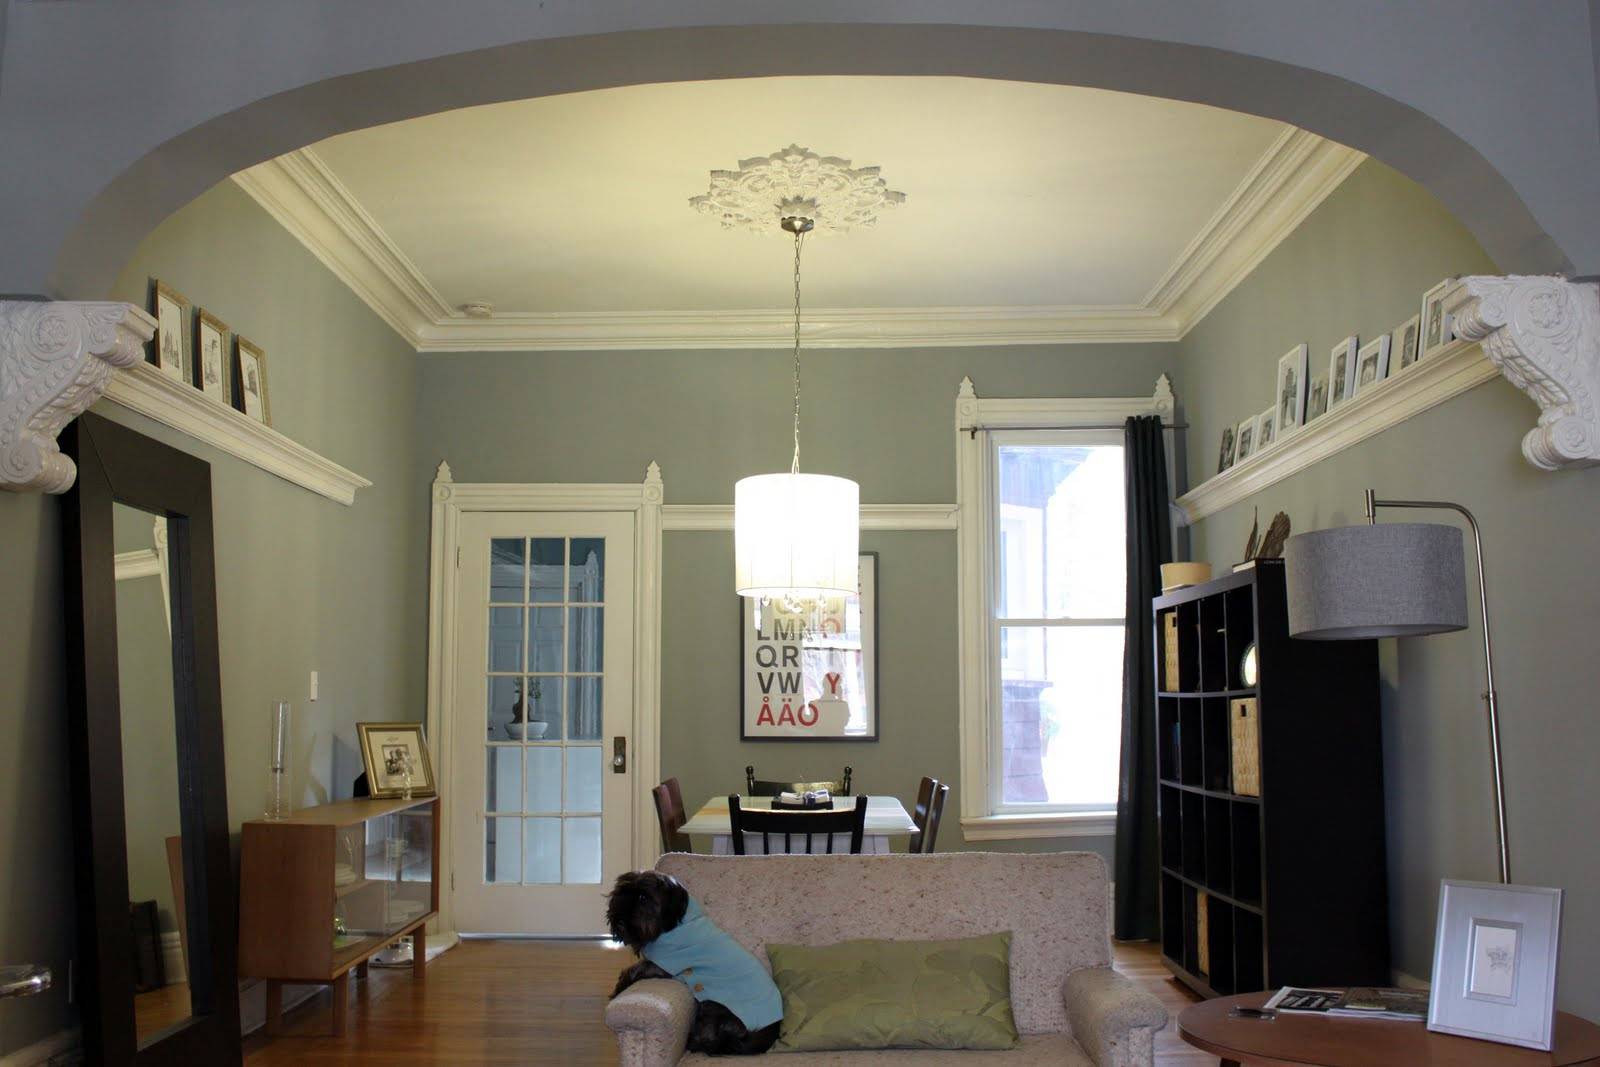 promised, here are some after photos of our Living and Dining Rooms title=